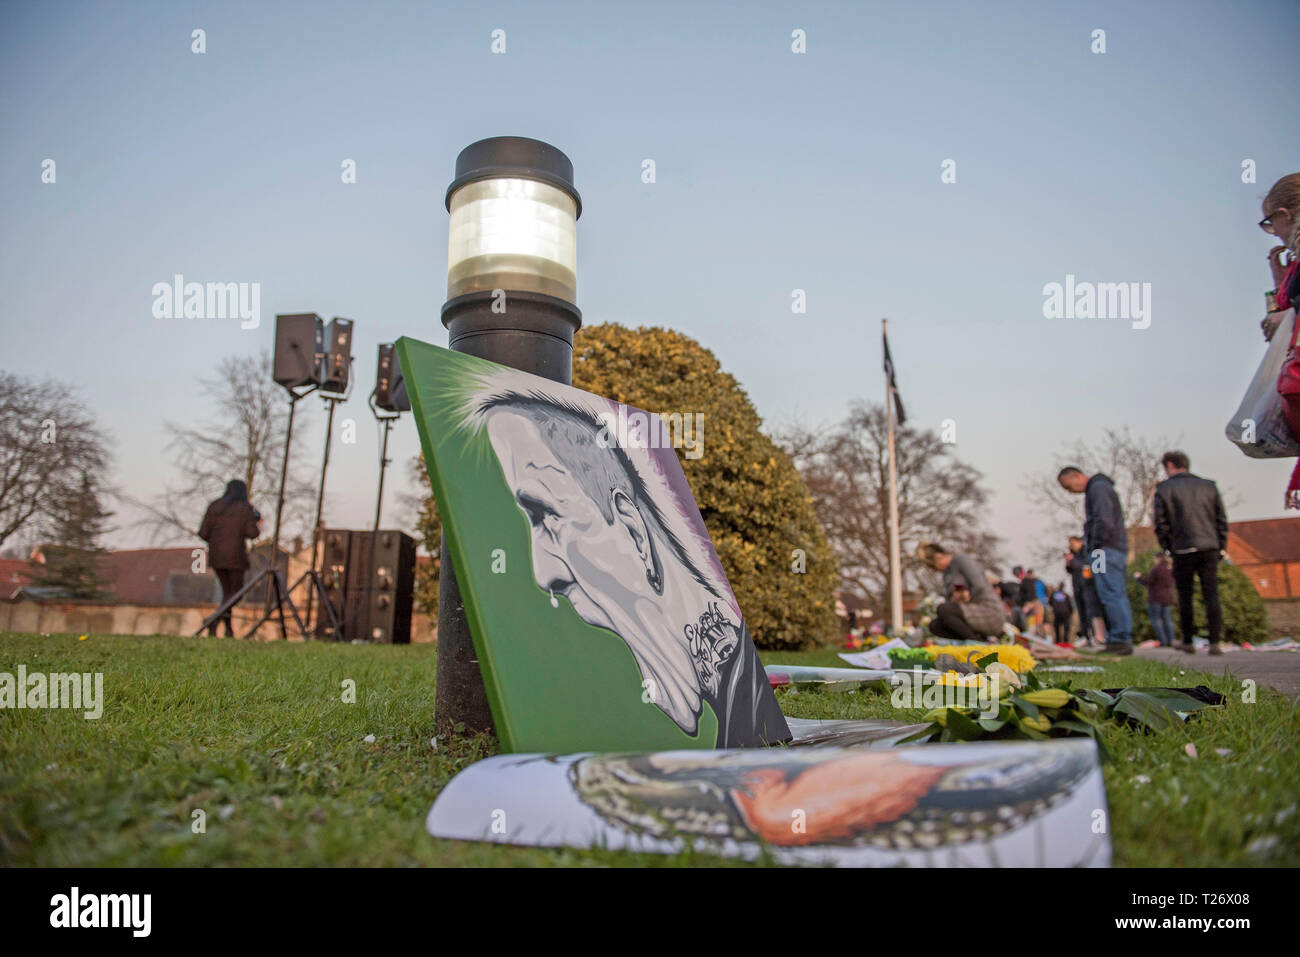 Essex, UK. 30th March 2019. Fans look at the floral tributes in the church grounds after the funeral of the late  Prodigy singer Keith Flint at St Marys Church in Bocking,  Essex today. Credit: Phil Rees/Alamy Live News - Stock Image